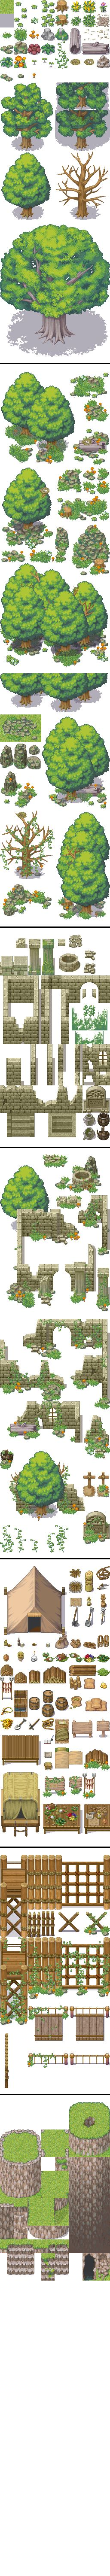 Tileset bosque expansion rtp - RPG Maker XP by Mataraelfay.deviantart.com on @deviantART